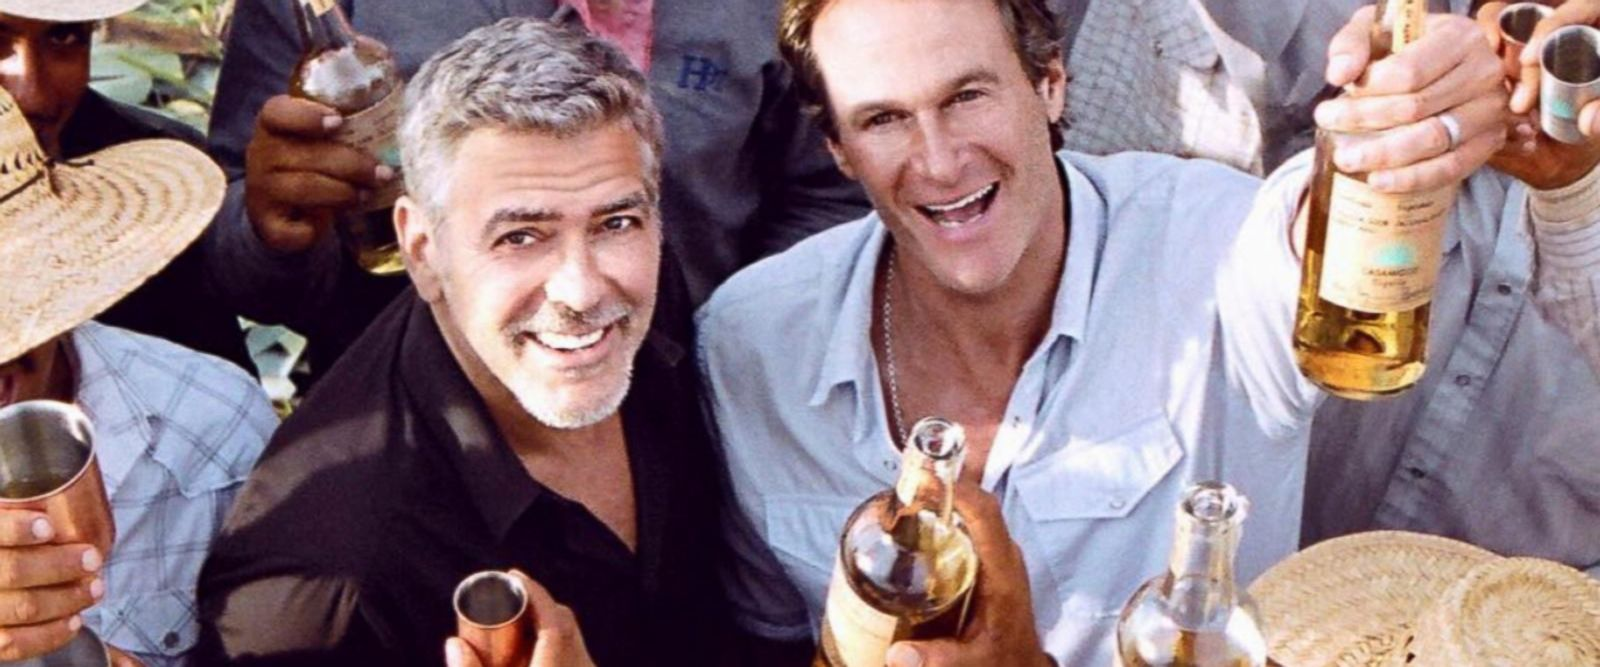 VIDEO: George Clooney's business partner reacts to $1B tequila sale